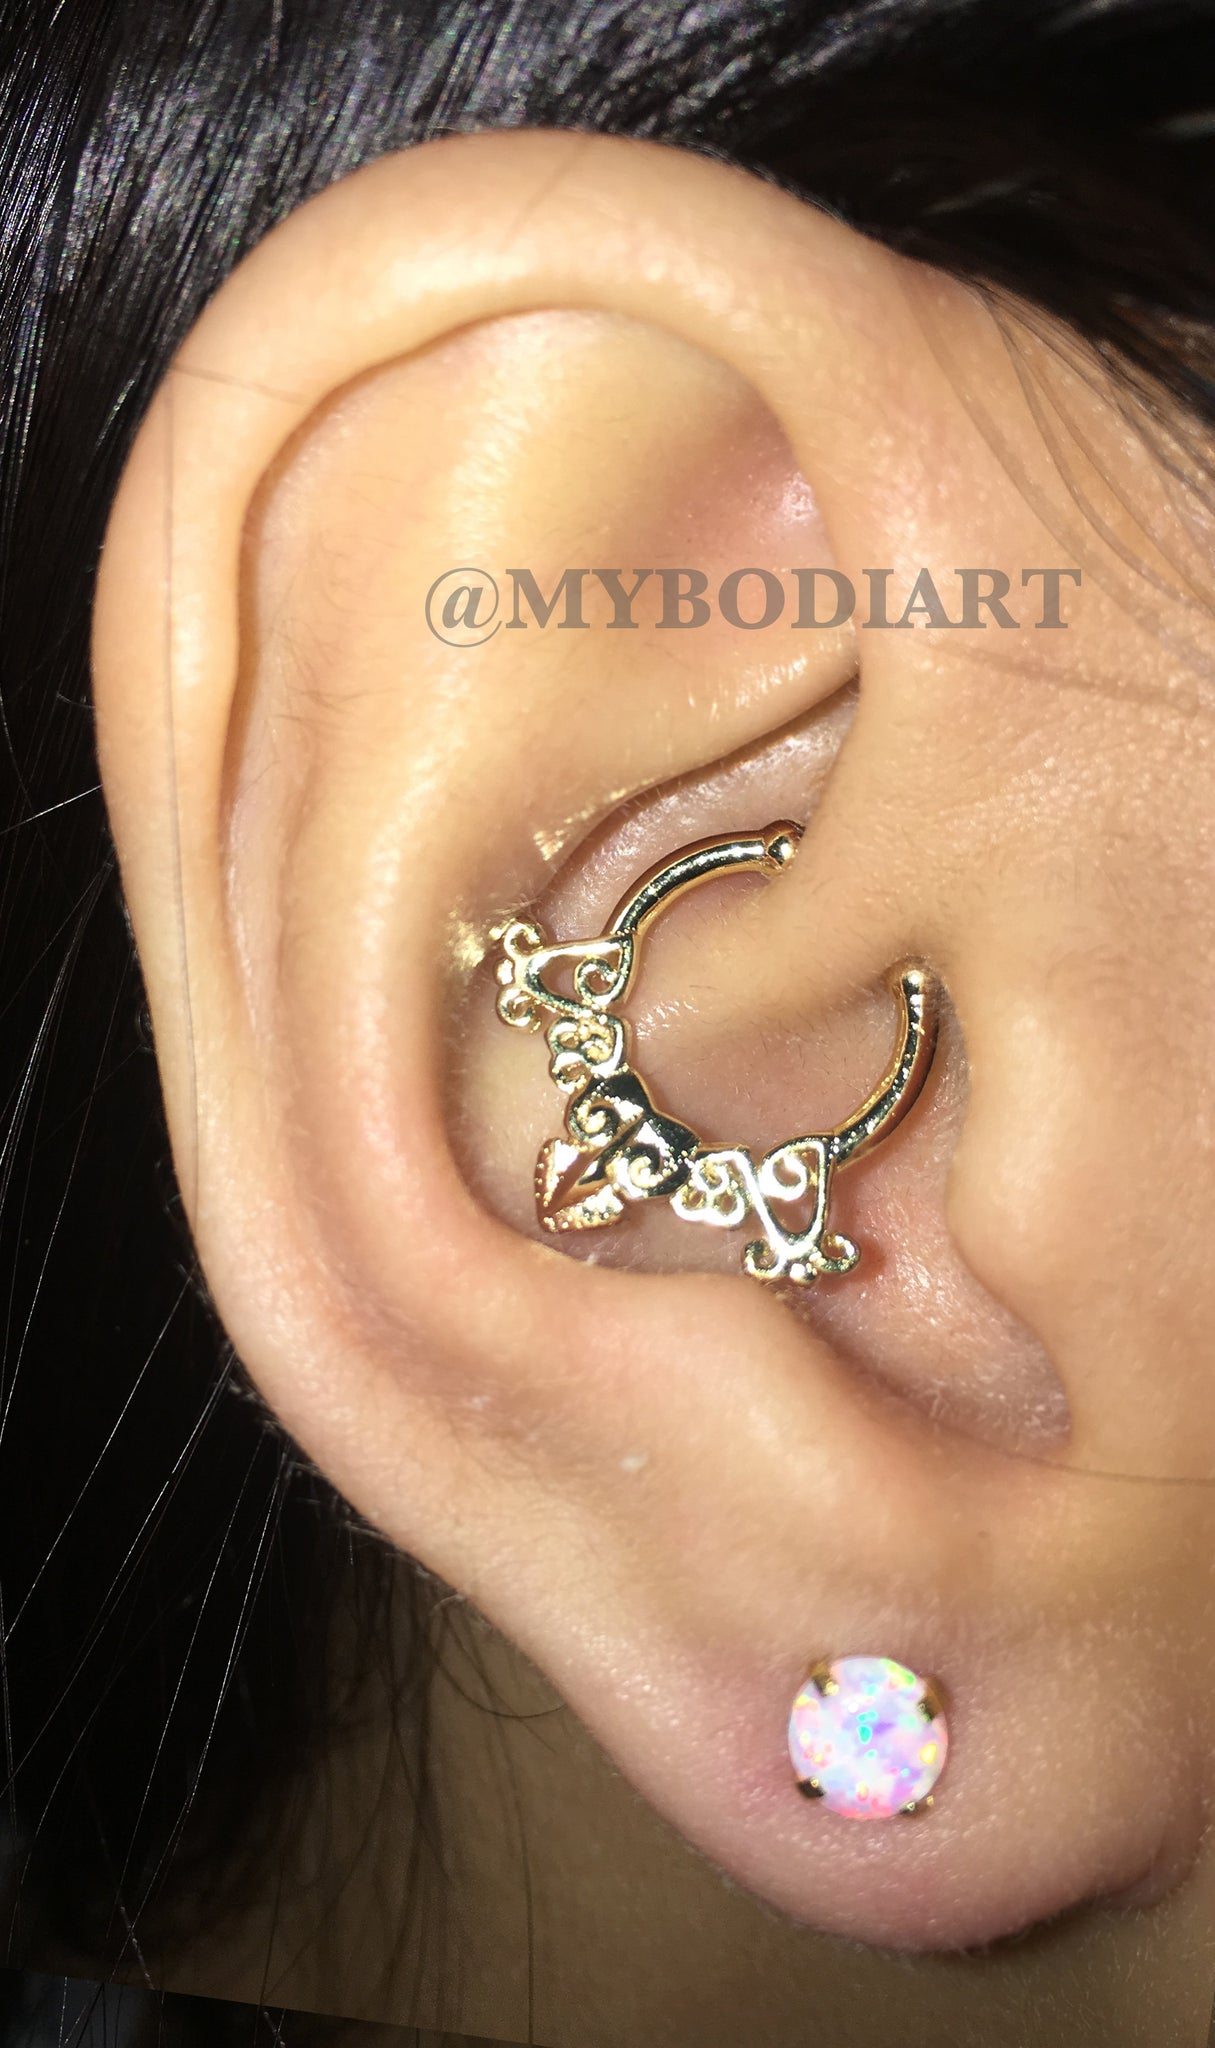 Cute Ear Piercing Ideas - Opal Lobe Earring Stud - Gold Rook Daith Hoop Ring - www.MyBodiArt.com